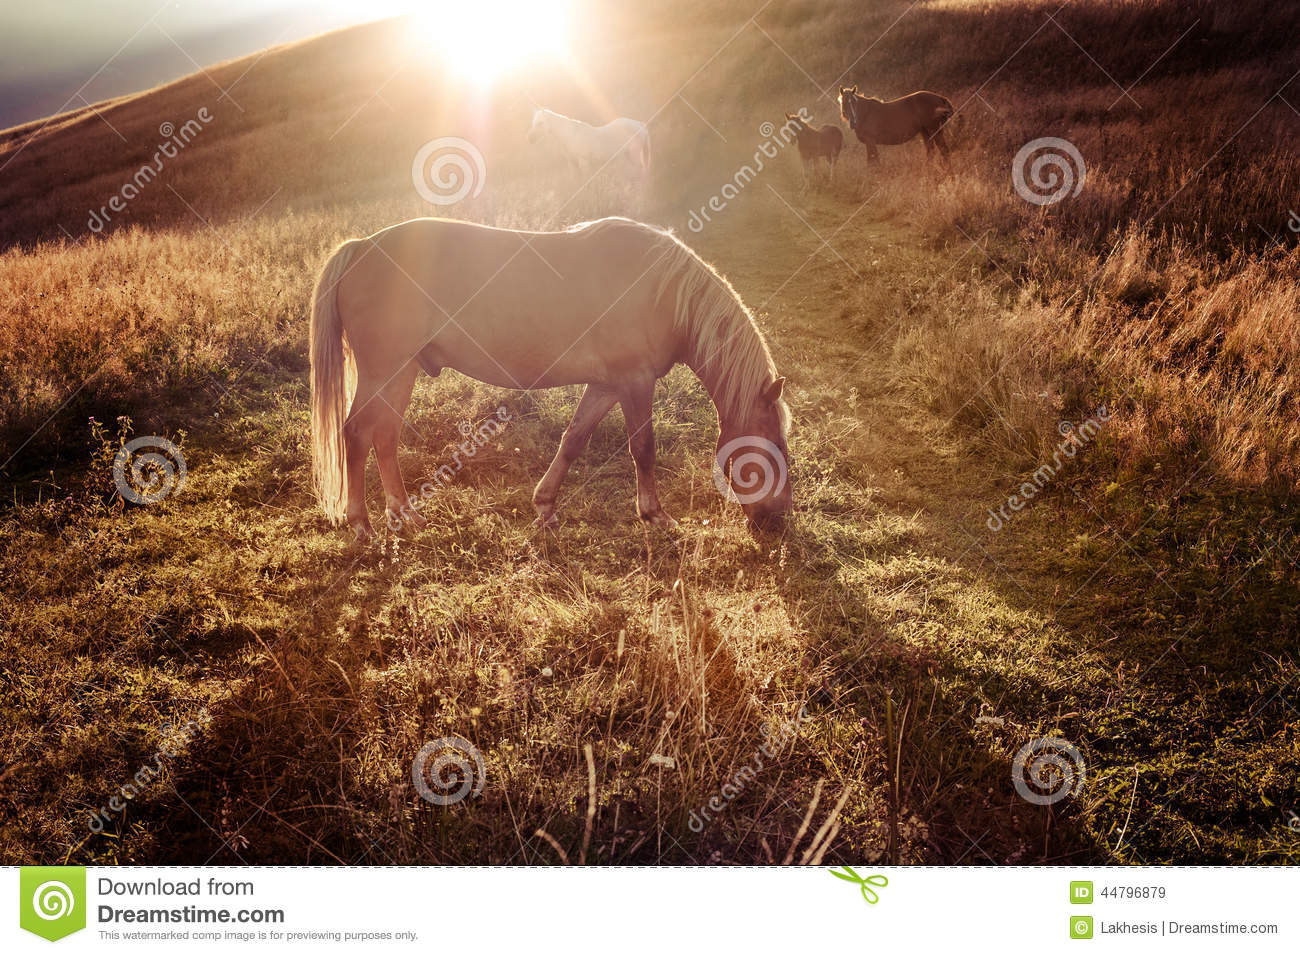 Download Sunset In Mountains Nature Background. Horses Silhouette At Haze Stock Image - Image of hipster, freedom: 44796879